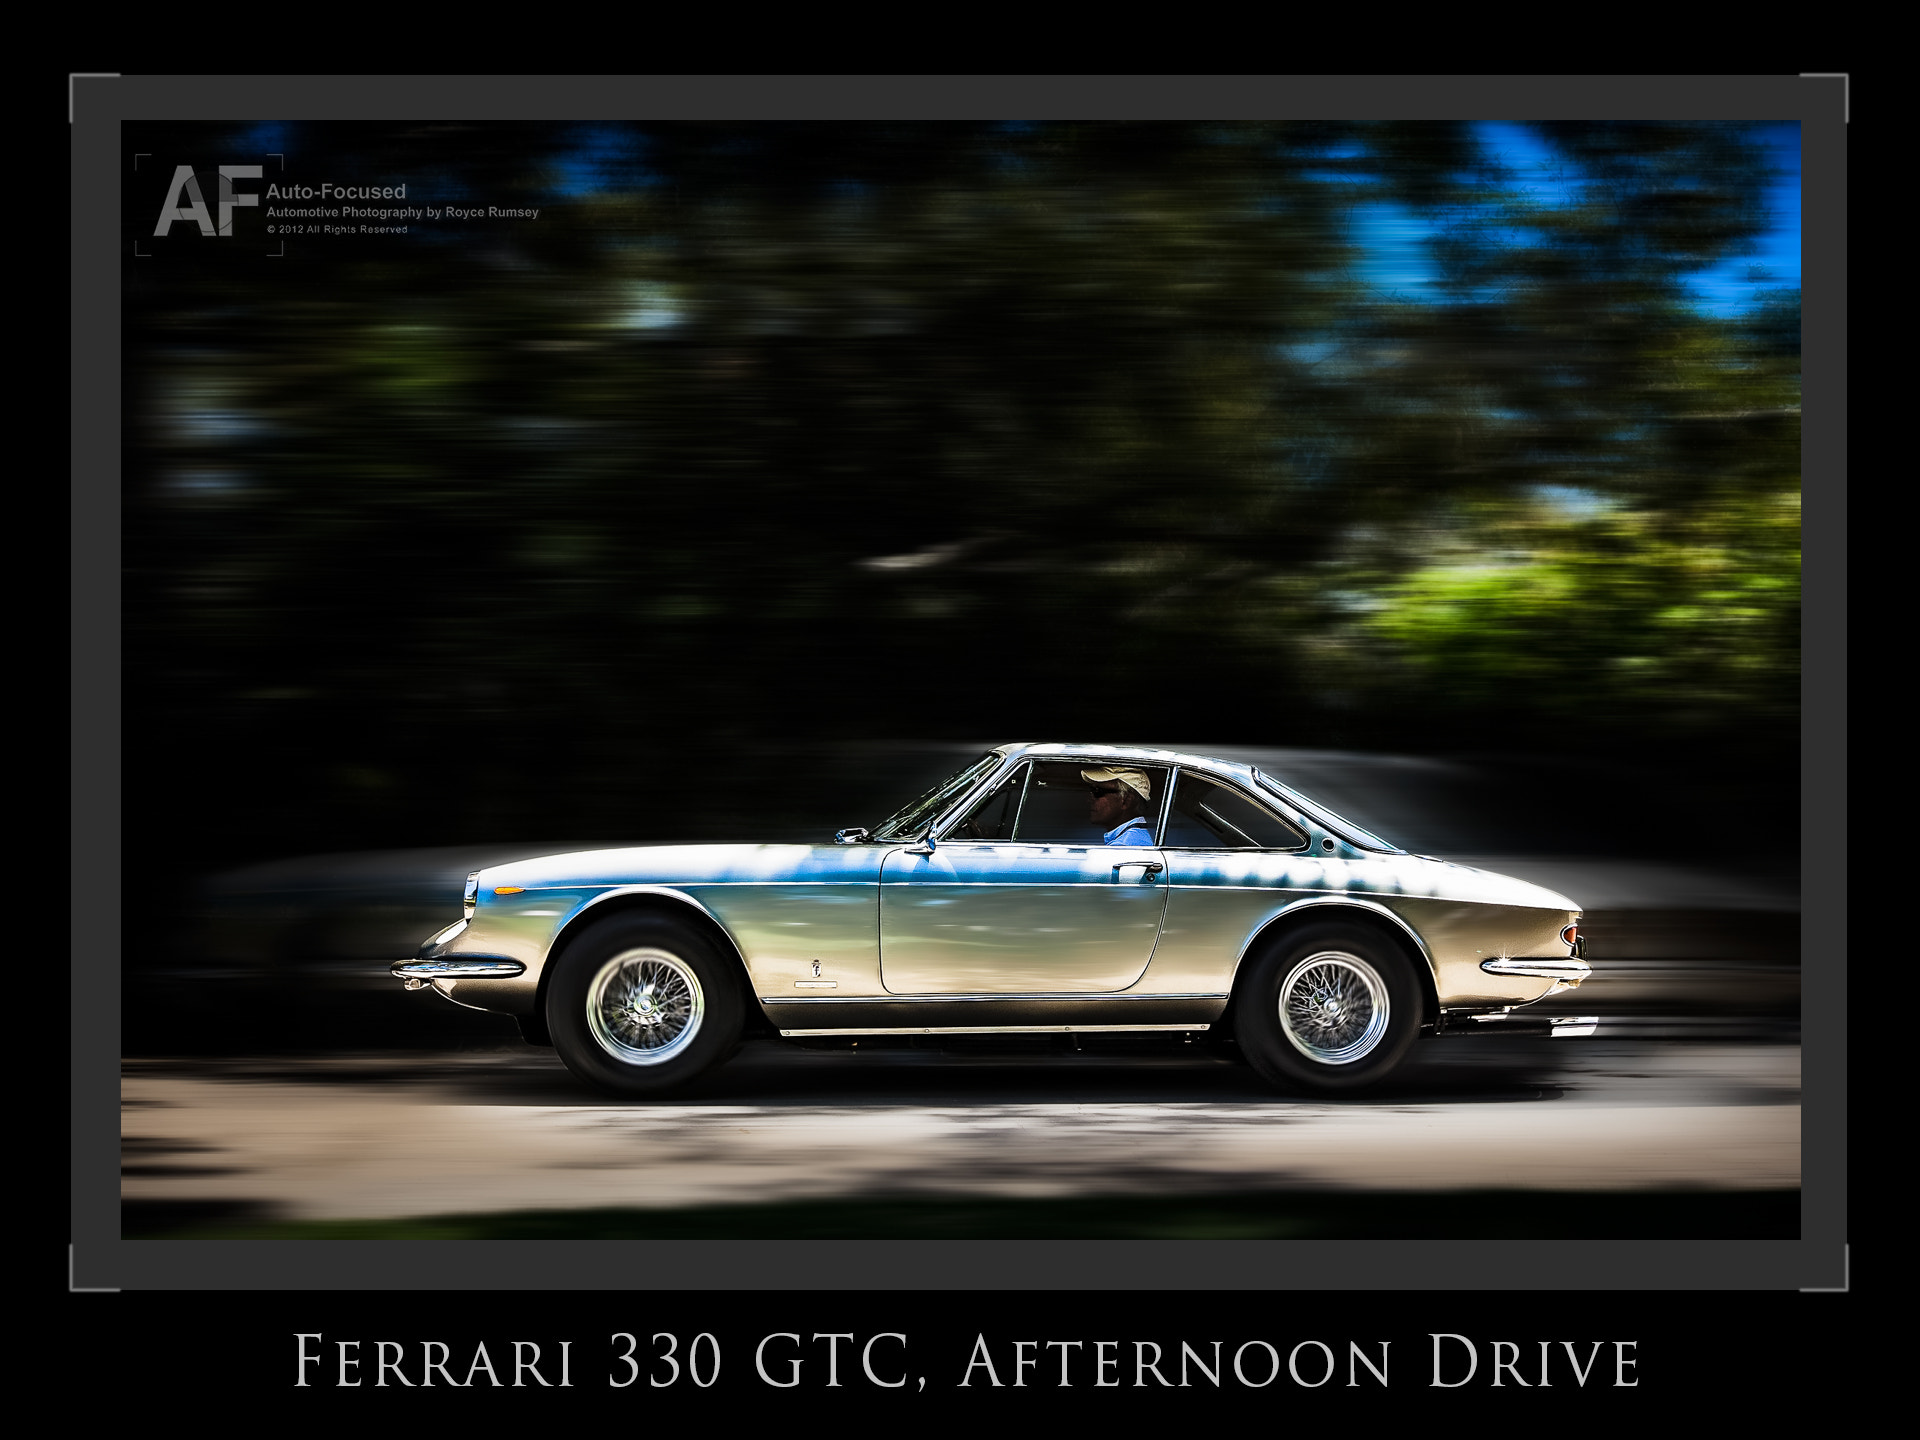 Photograph Ferrari GTC, Afternoon Drive Scene... by Royce Rumsey on 500px